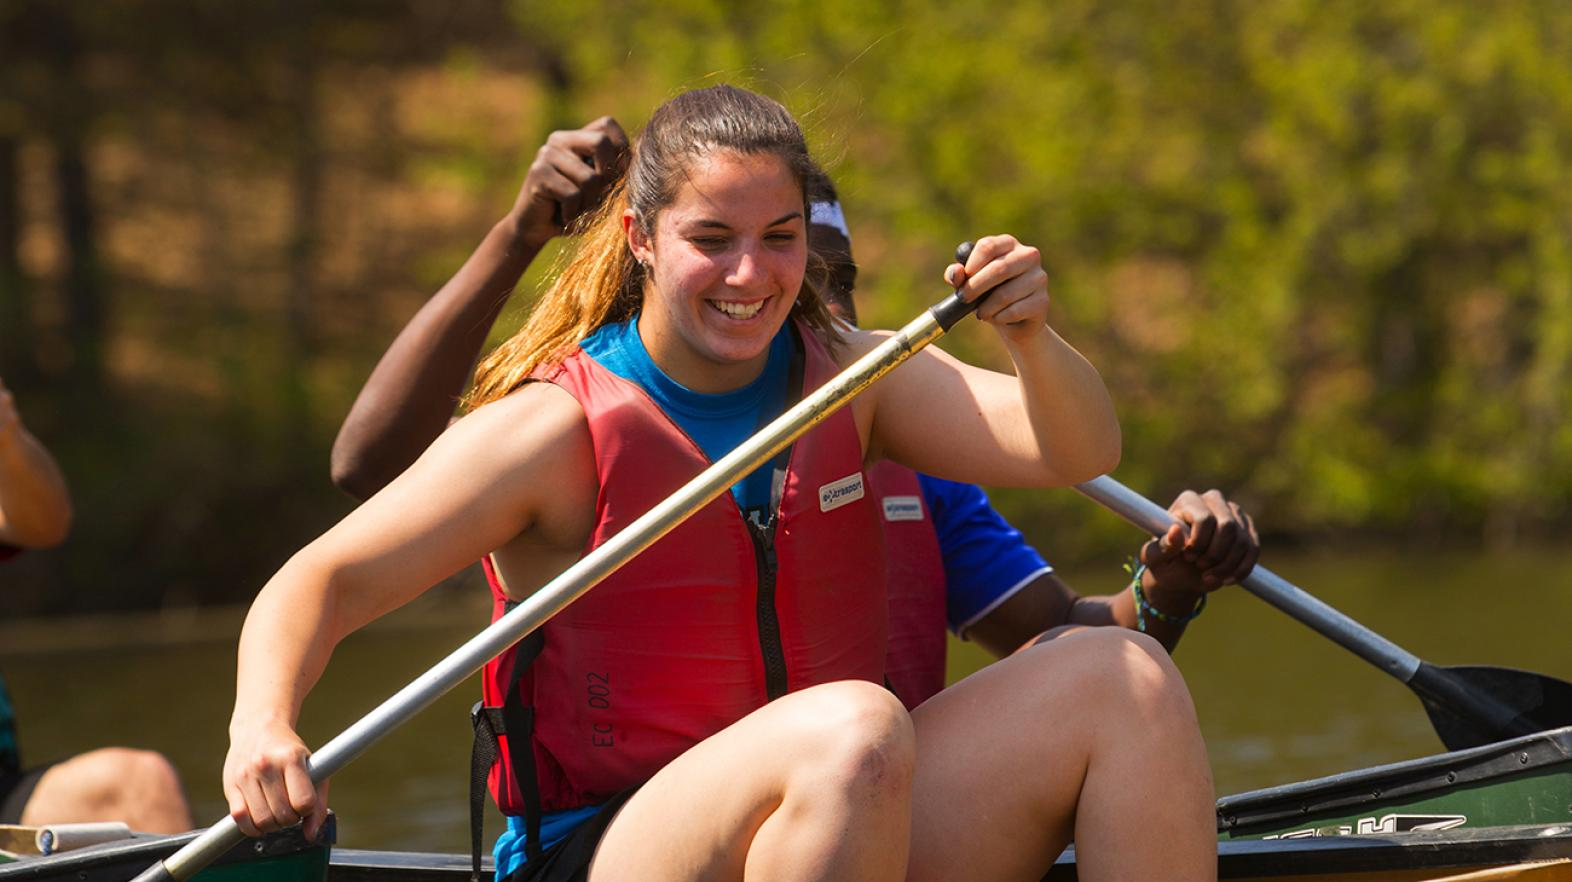 Student canoeing on Lake Massasoit at East Campus